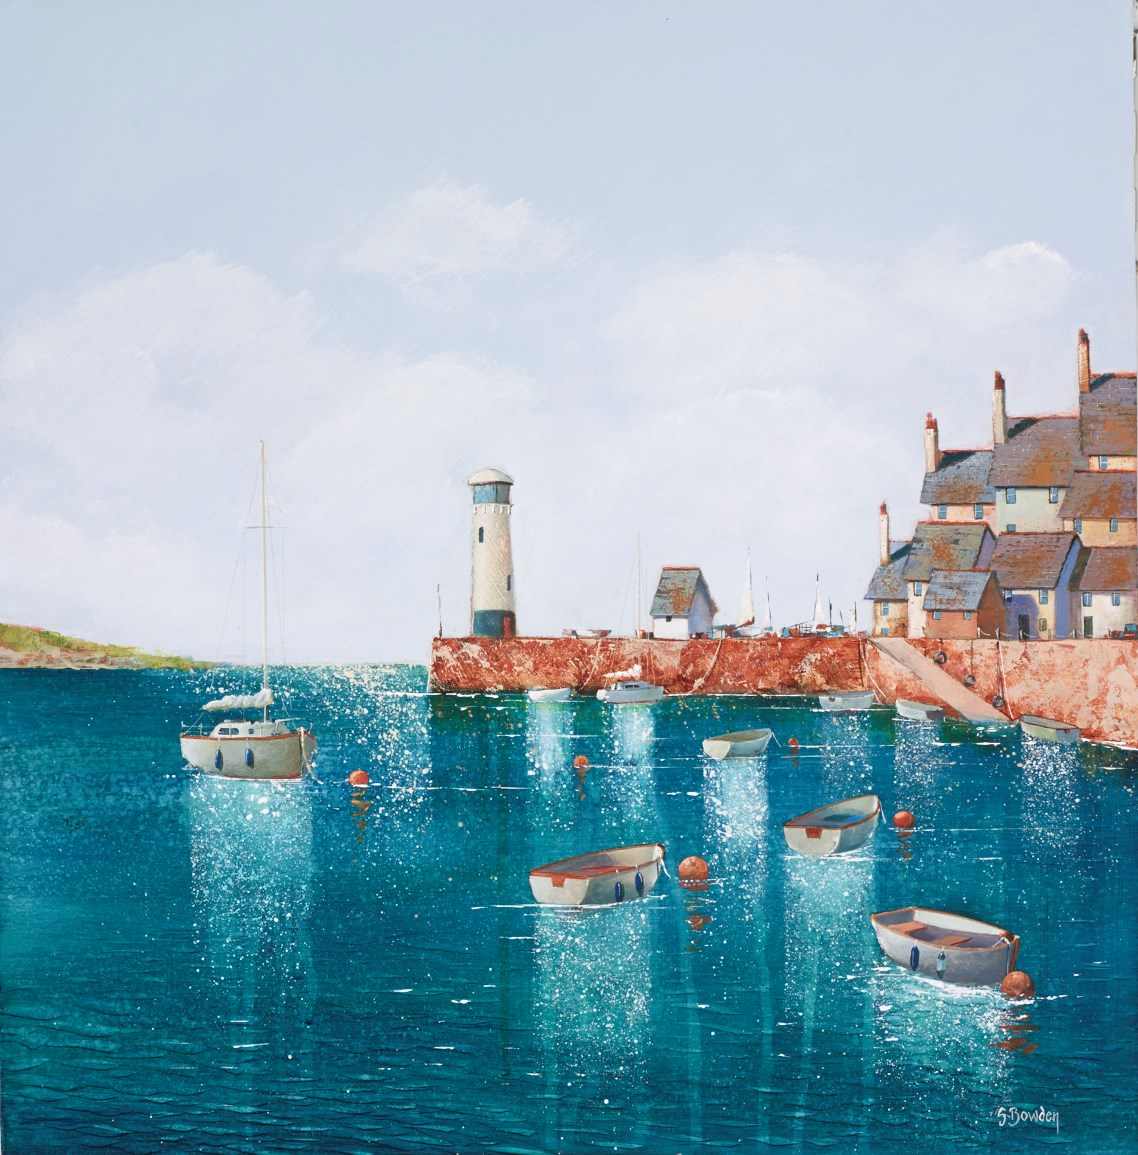 The Tang of Salt by steve bowden -  sized 18x18 inches. Available from Whitewall Galleries